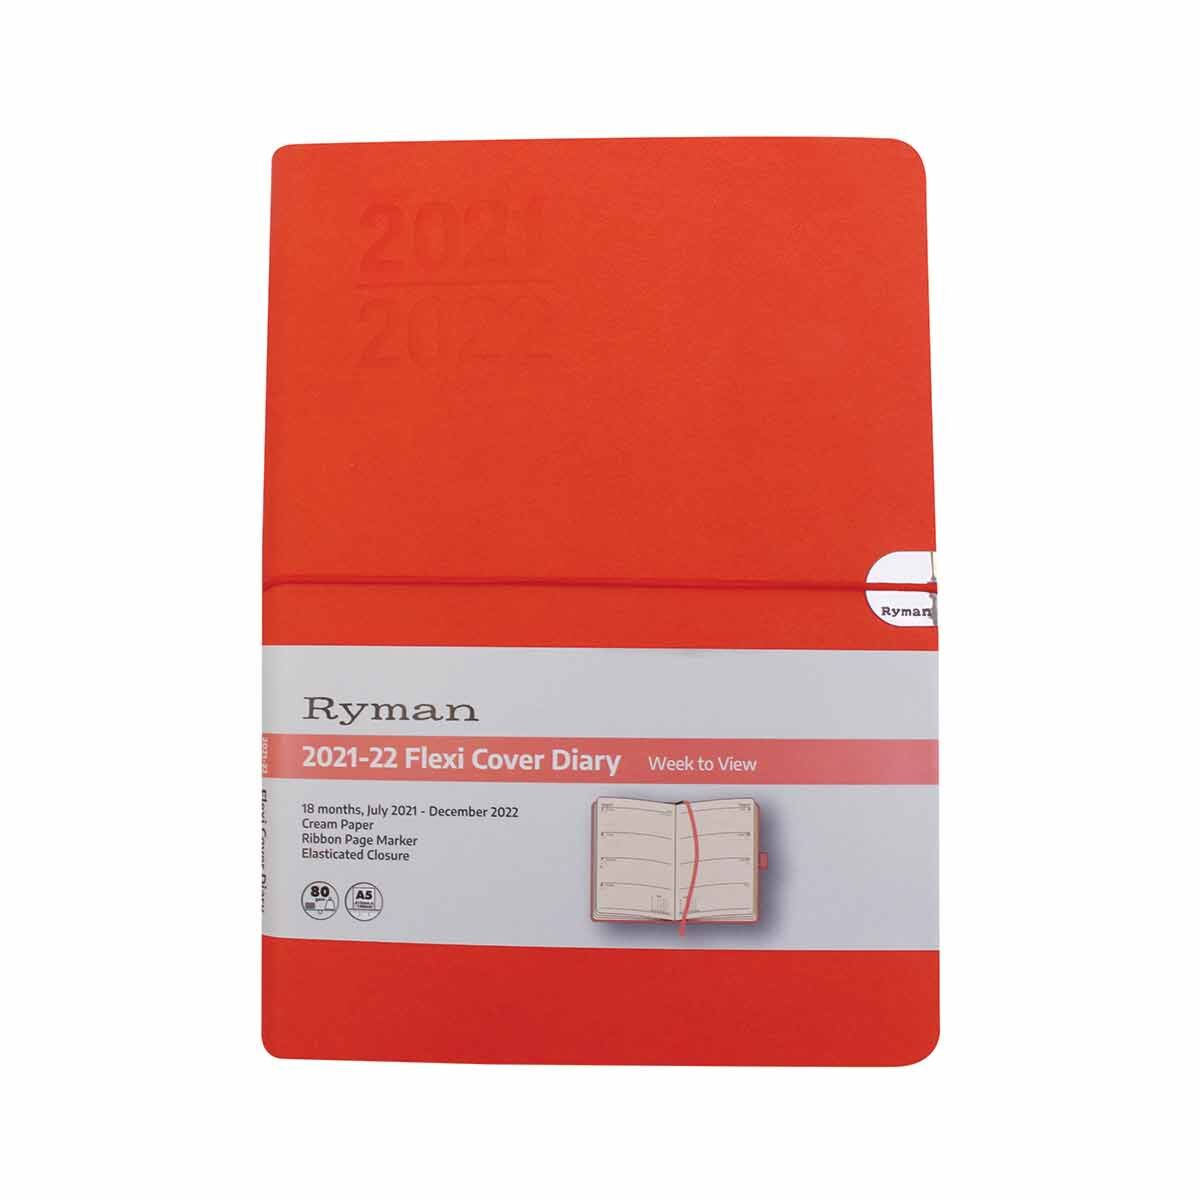 Ryman Soft Cover Flexi Mid-Year Diary Week to View A5 2021 Grey